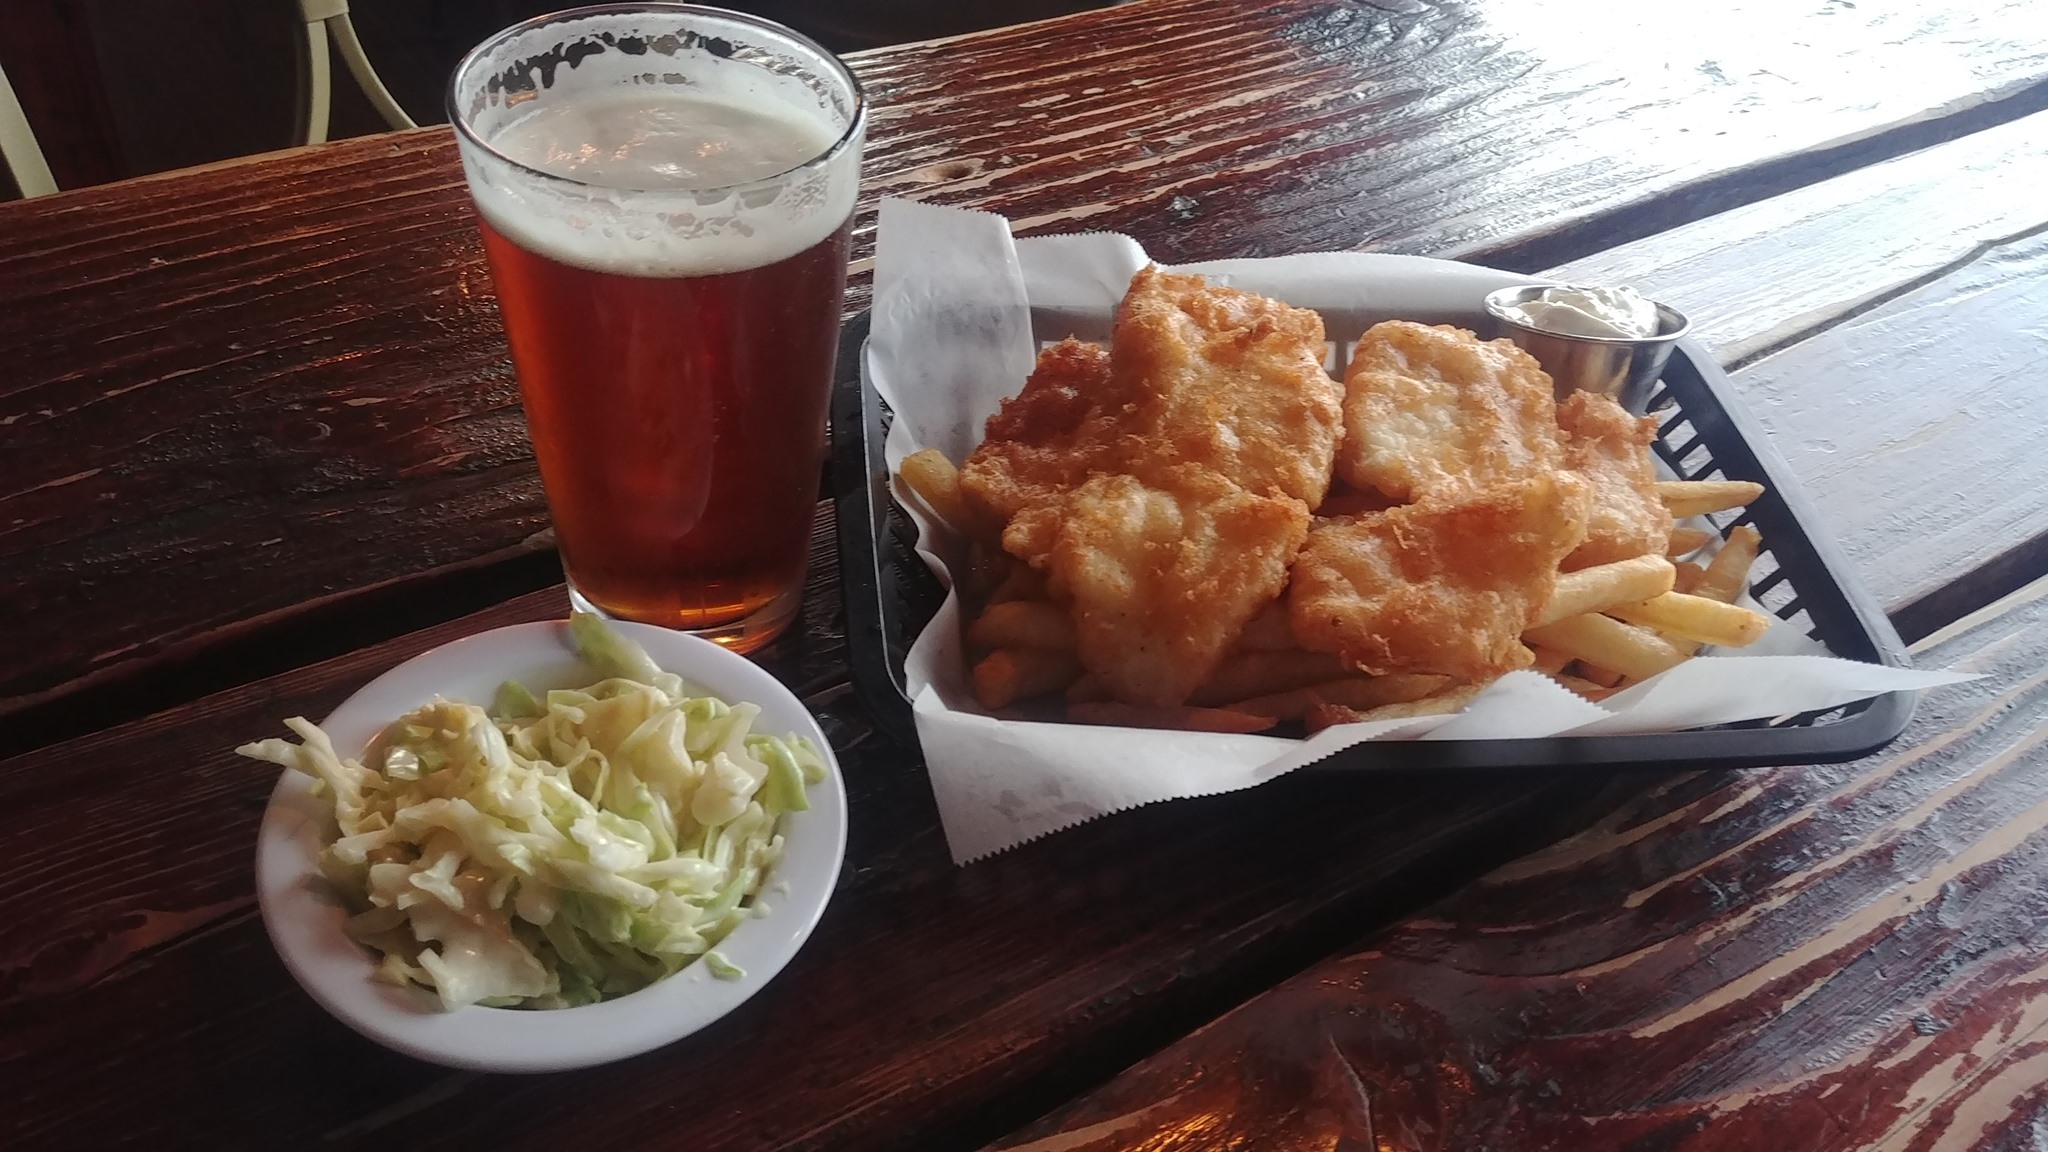 Fried fish with coleslaw and pint of beer